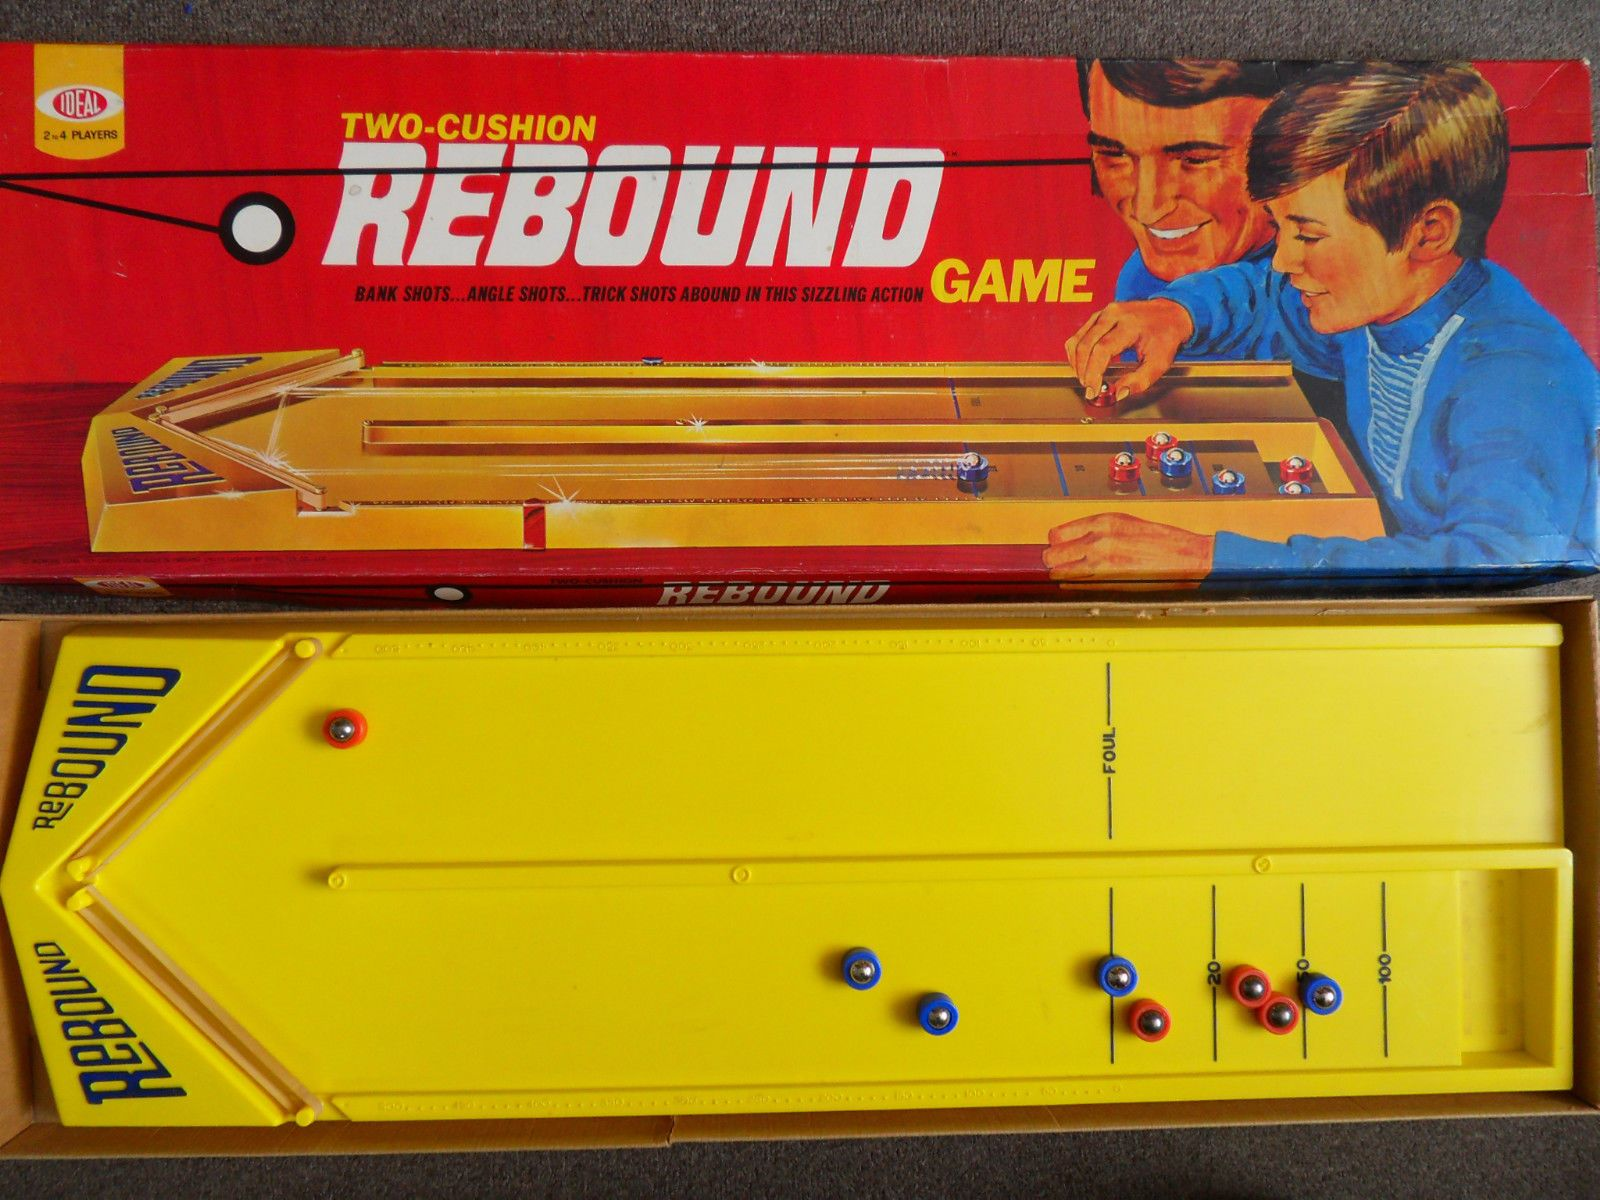 Vintage Toys And Games : Classic vintage board game rebound issue by ideal